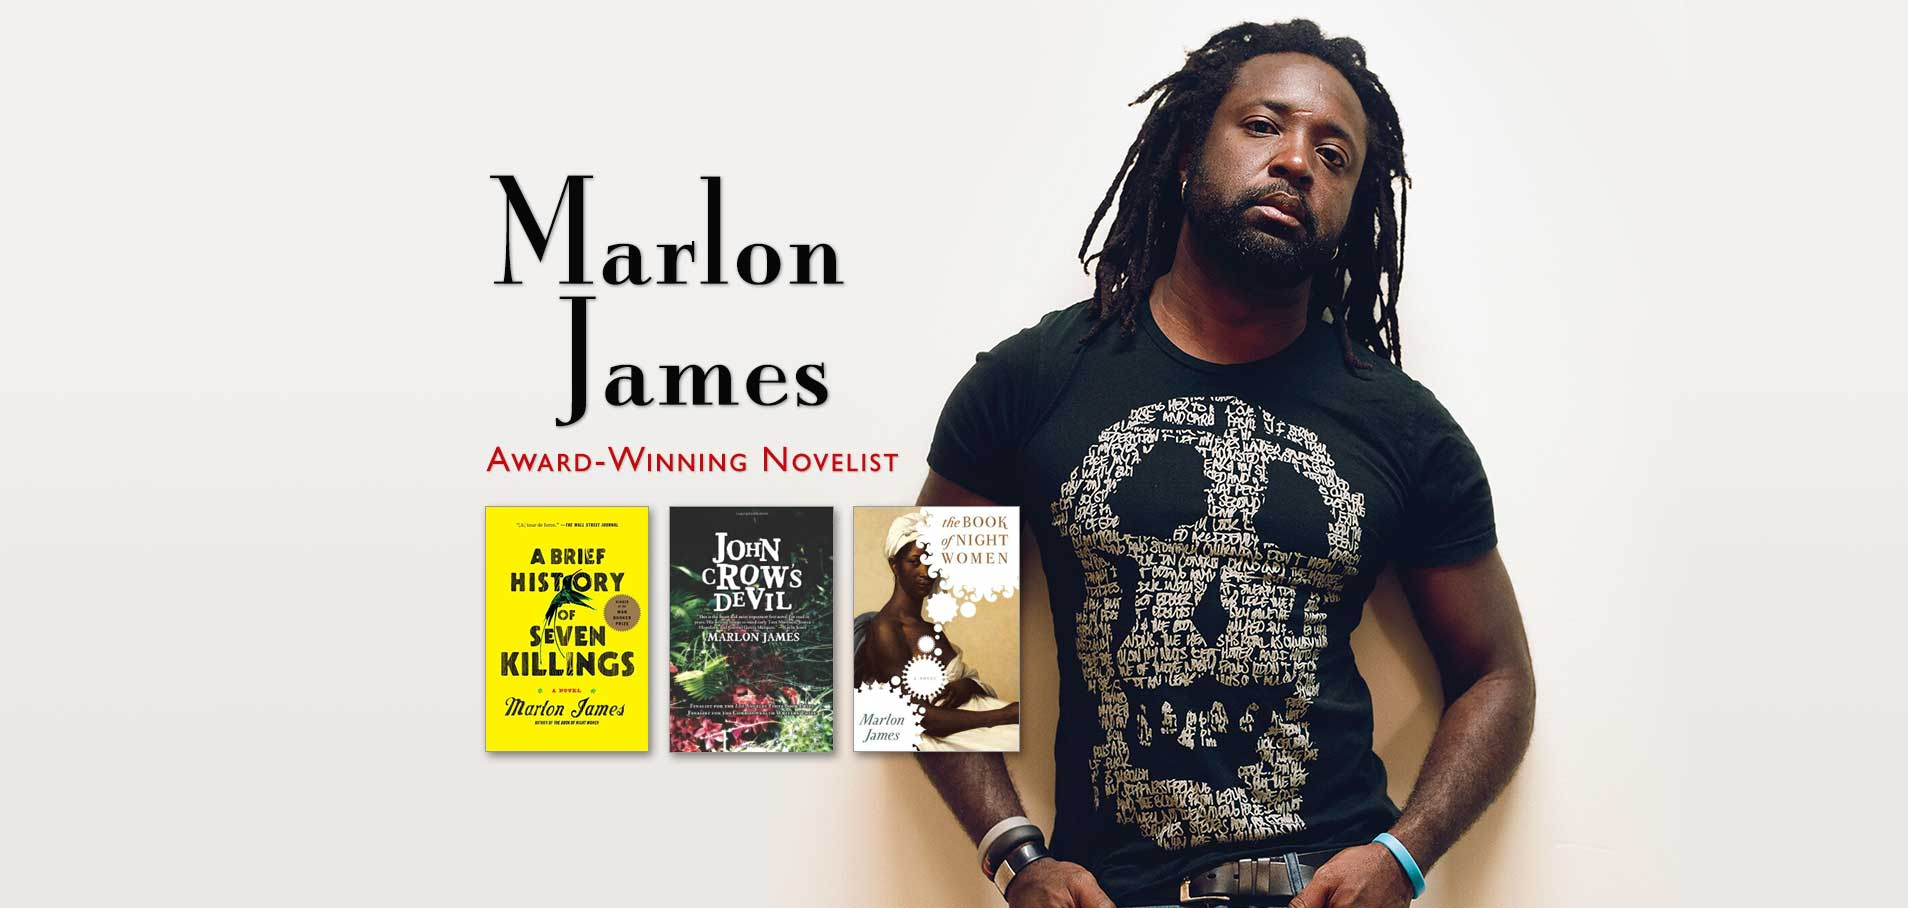 Marlon James image